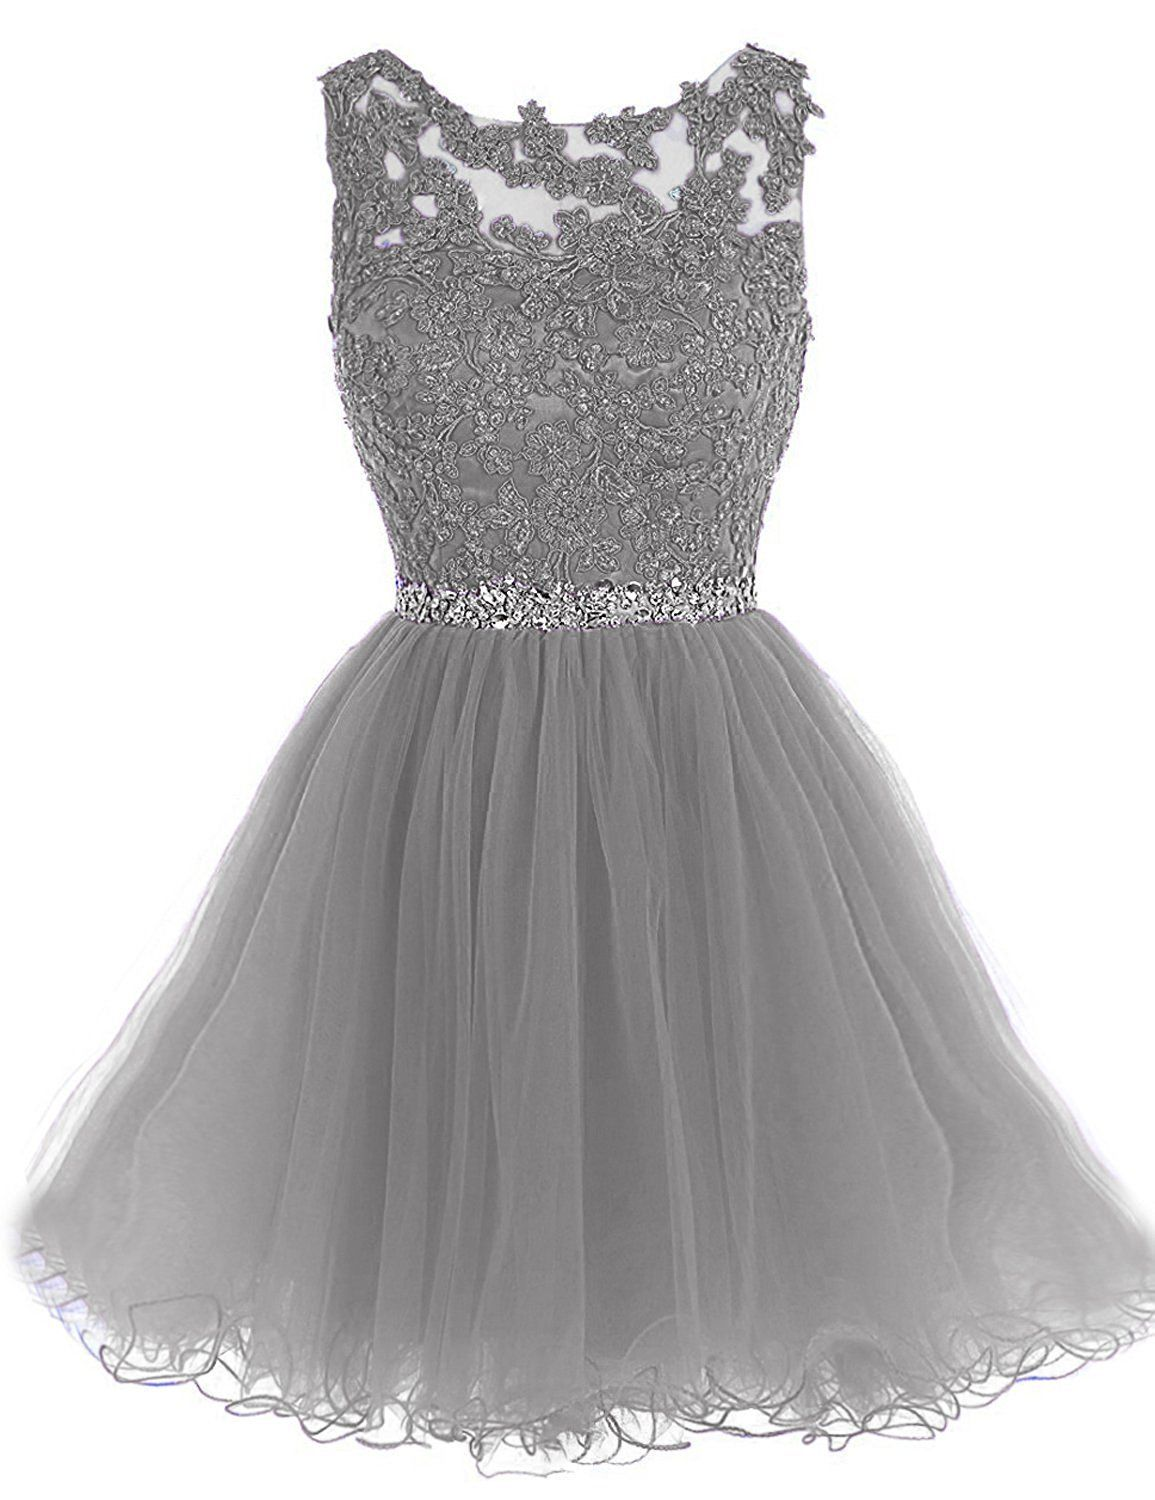 Wding short tulle homecoming dresses appliques beads prom party gown